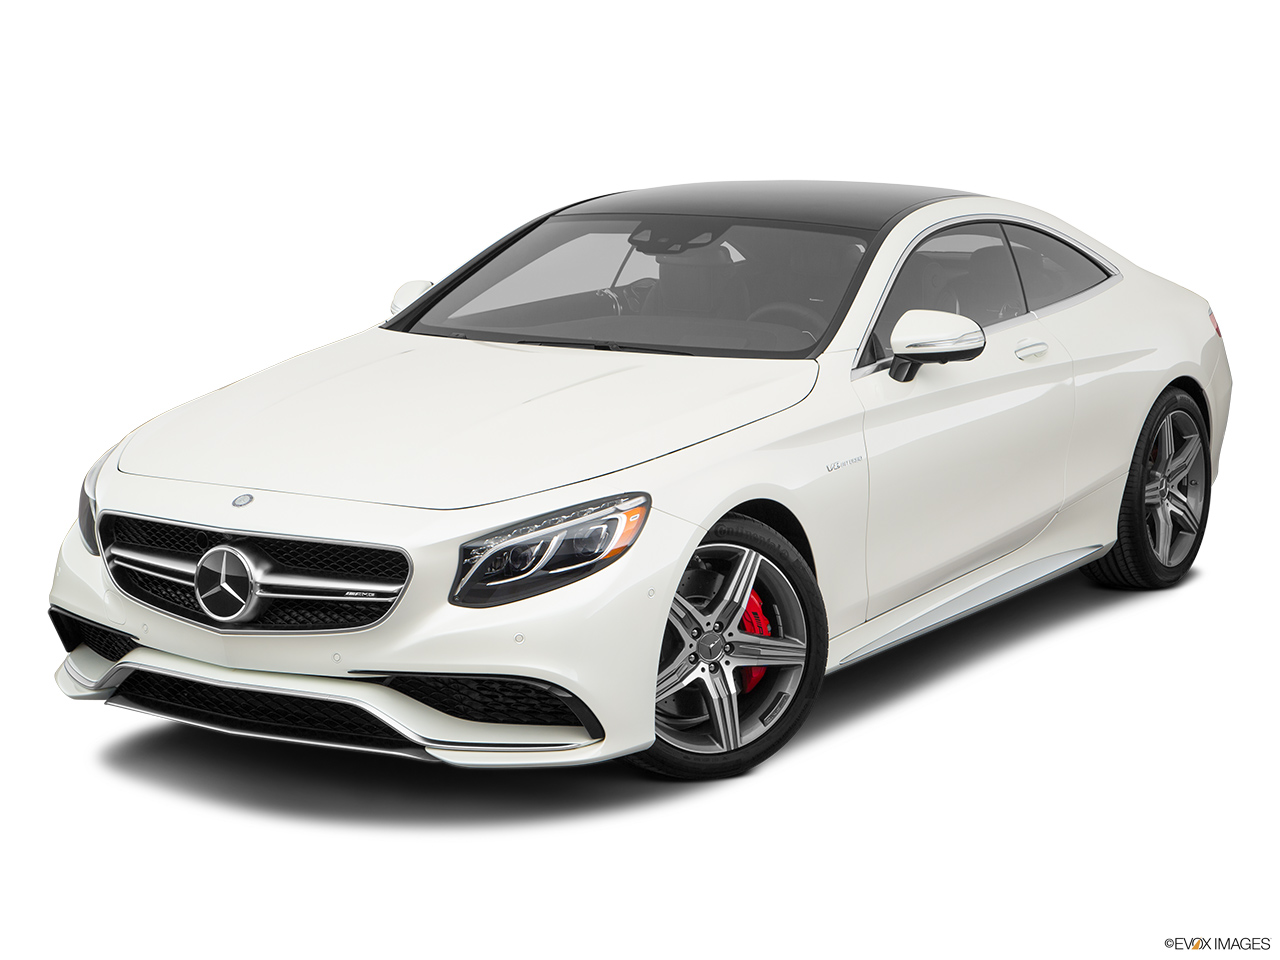 2017 mercedes benz s 63 amg coupe prices in saudi arabia for Mercedes benz saudi arabia